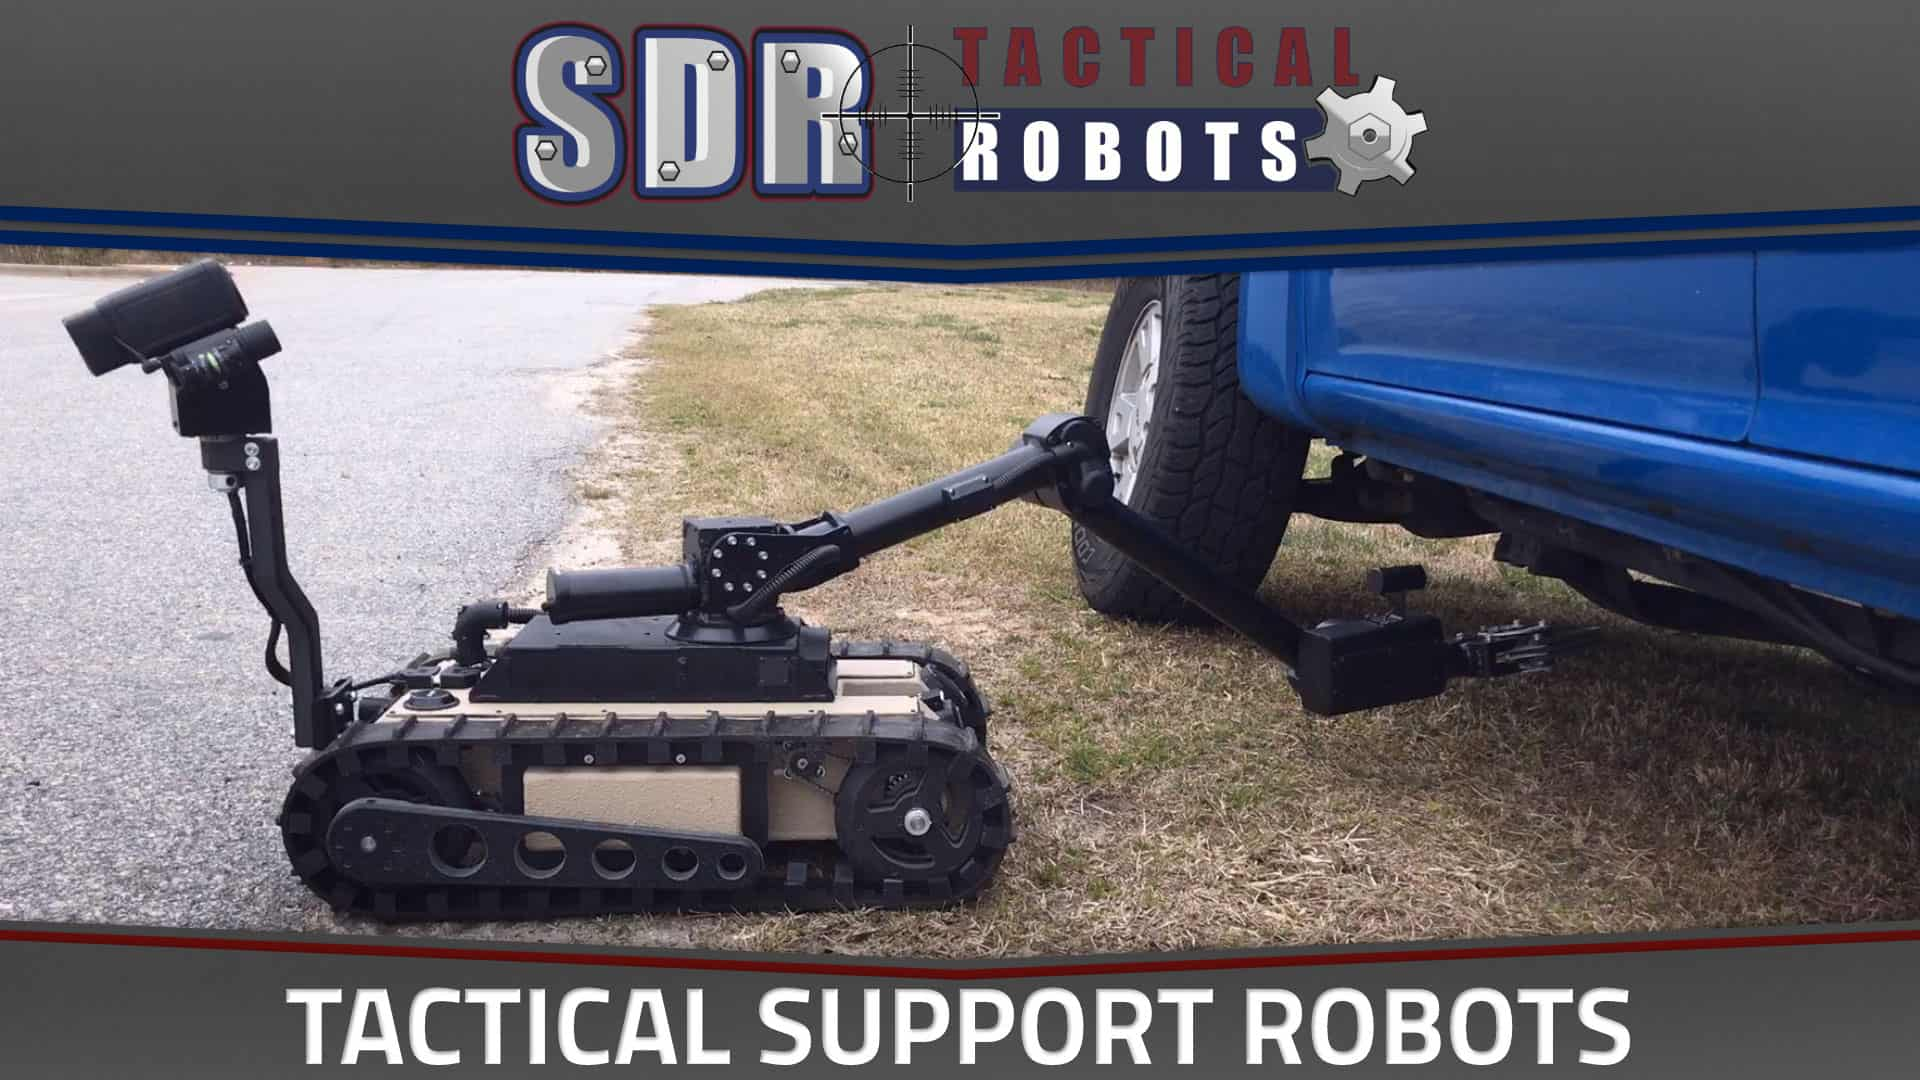 SuperDroid Tactical Robots for Law Enforcement, Government Agencies, and Military Support